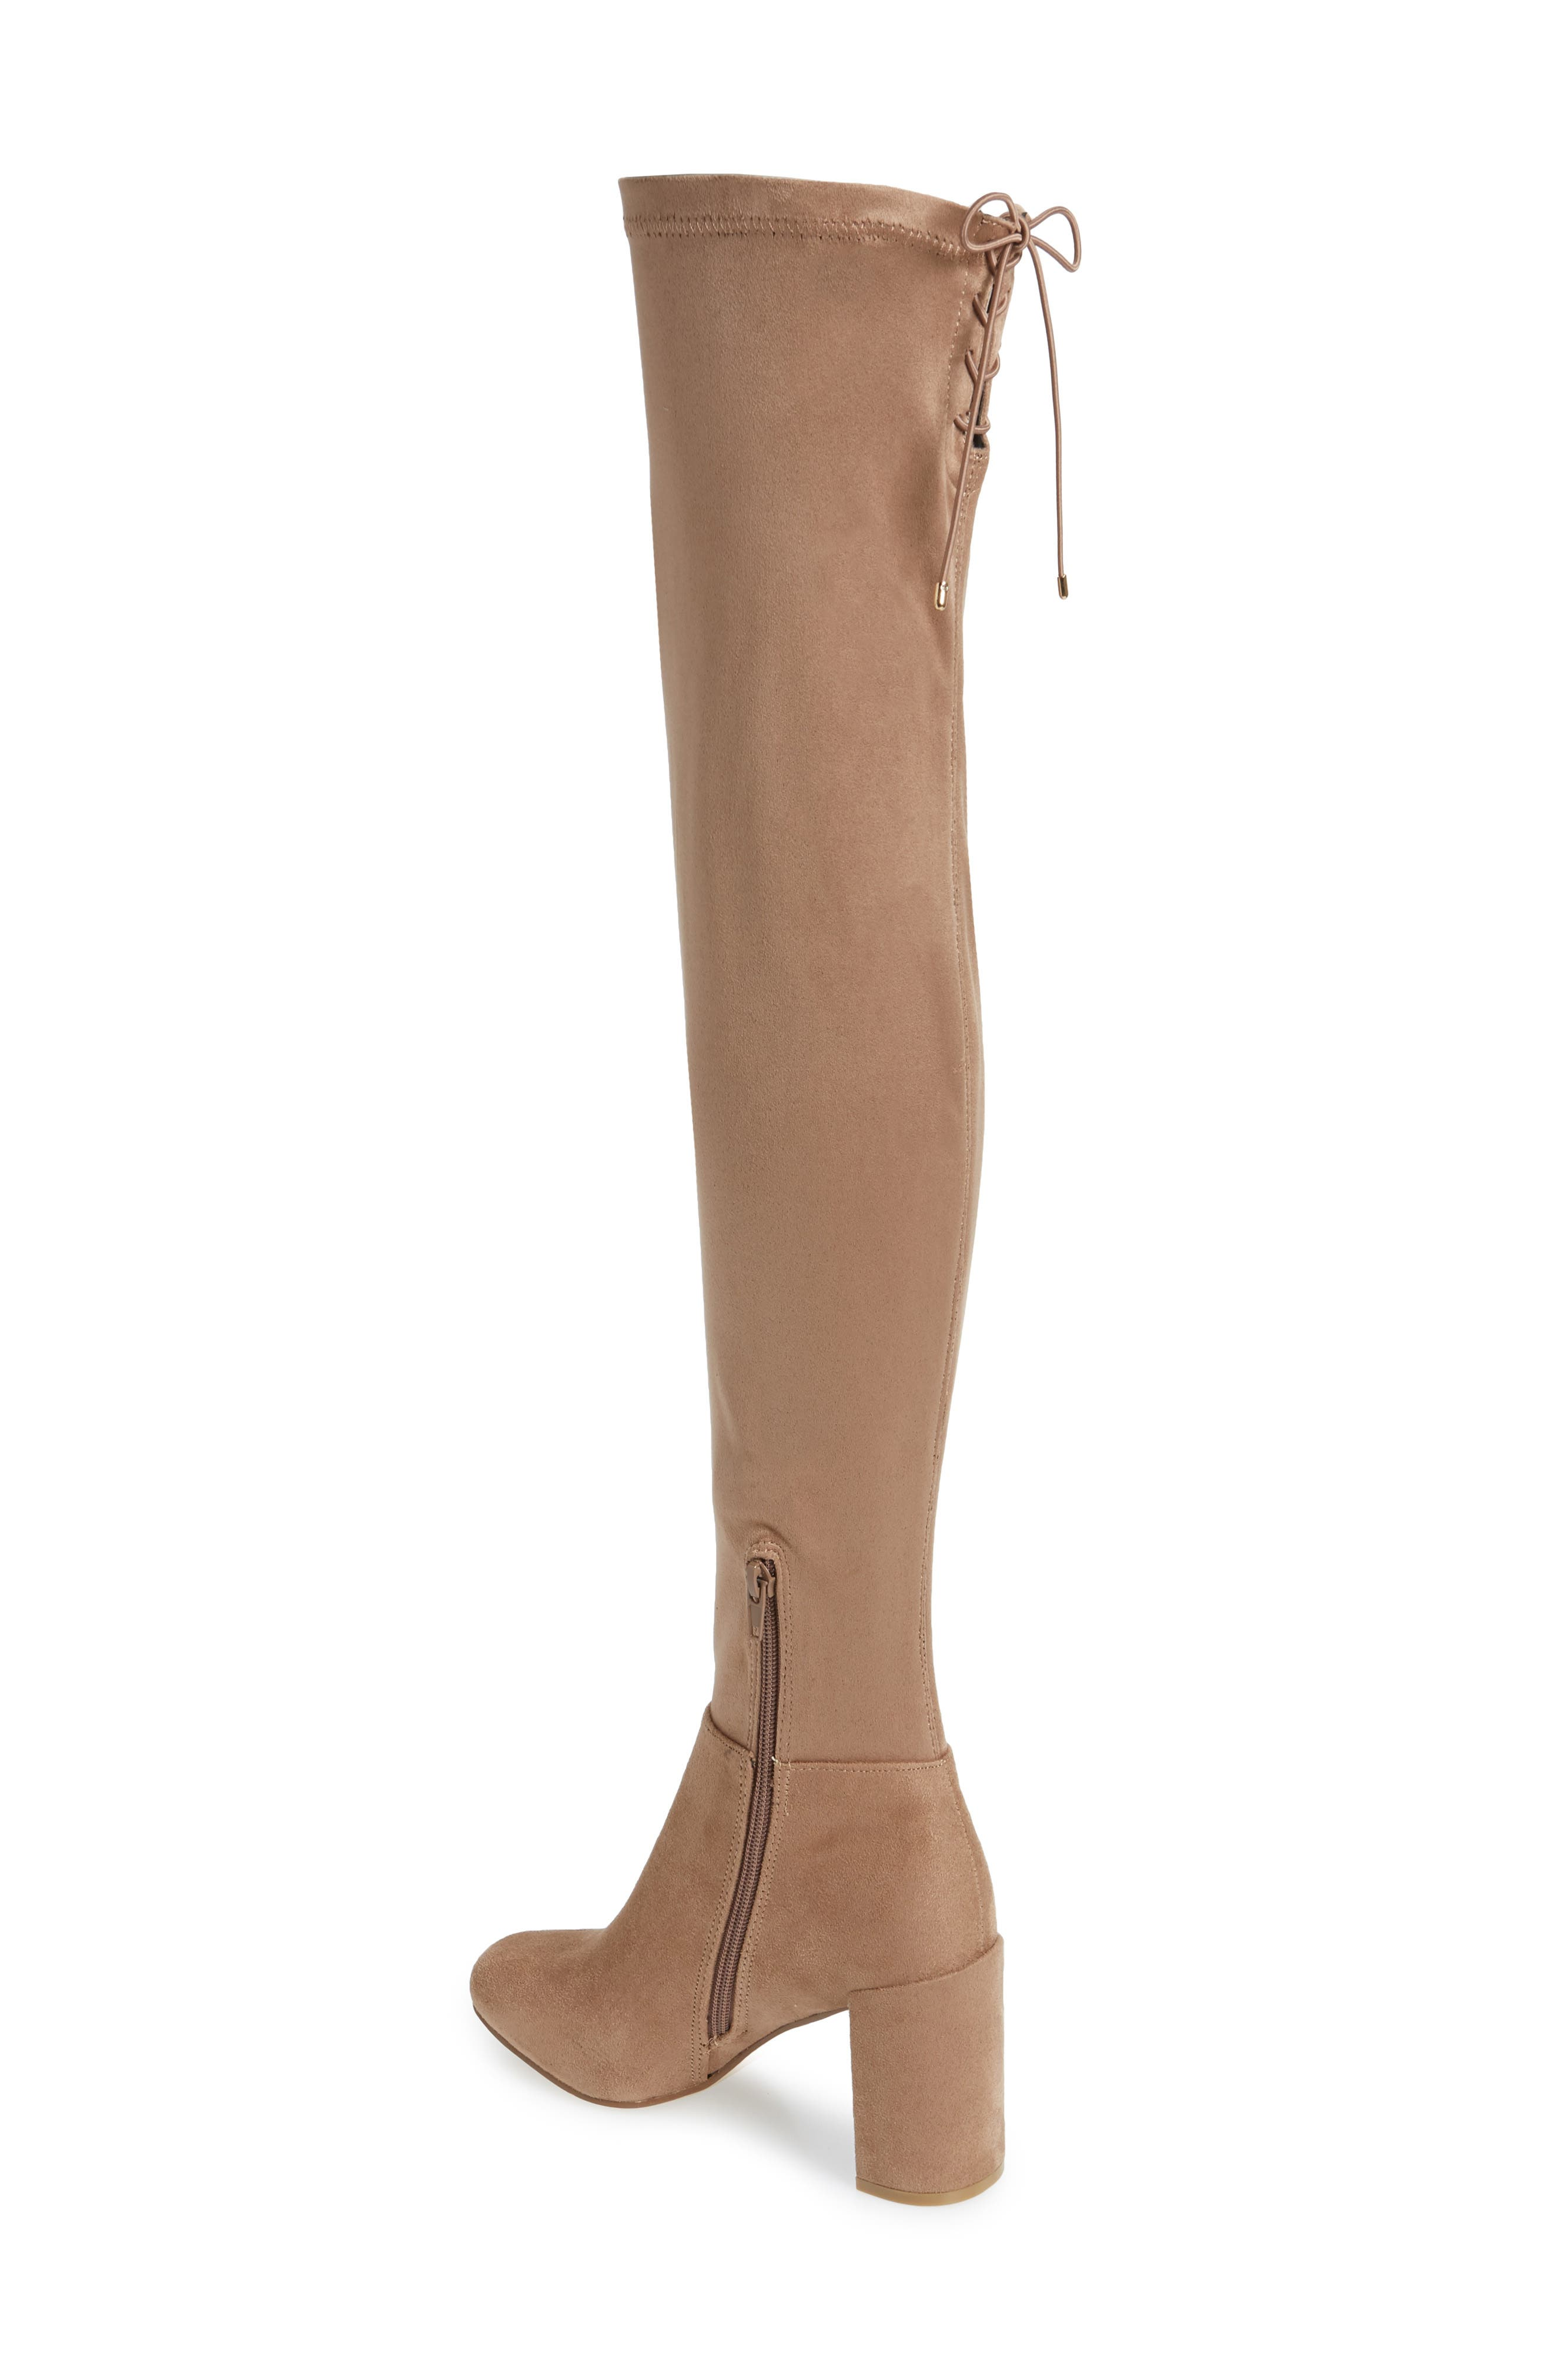 King Over the Knee Boot,                             Alternate thumbnail 2, color,                             MINK